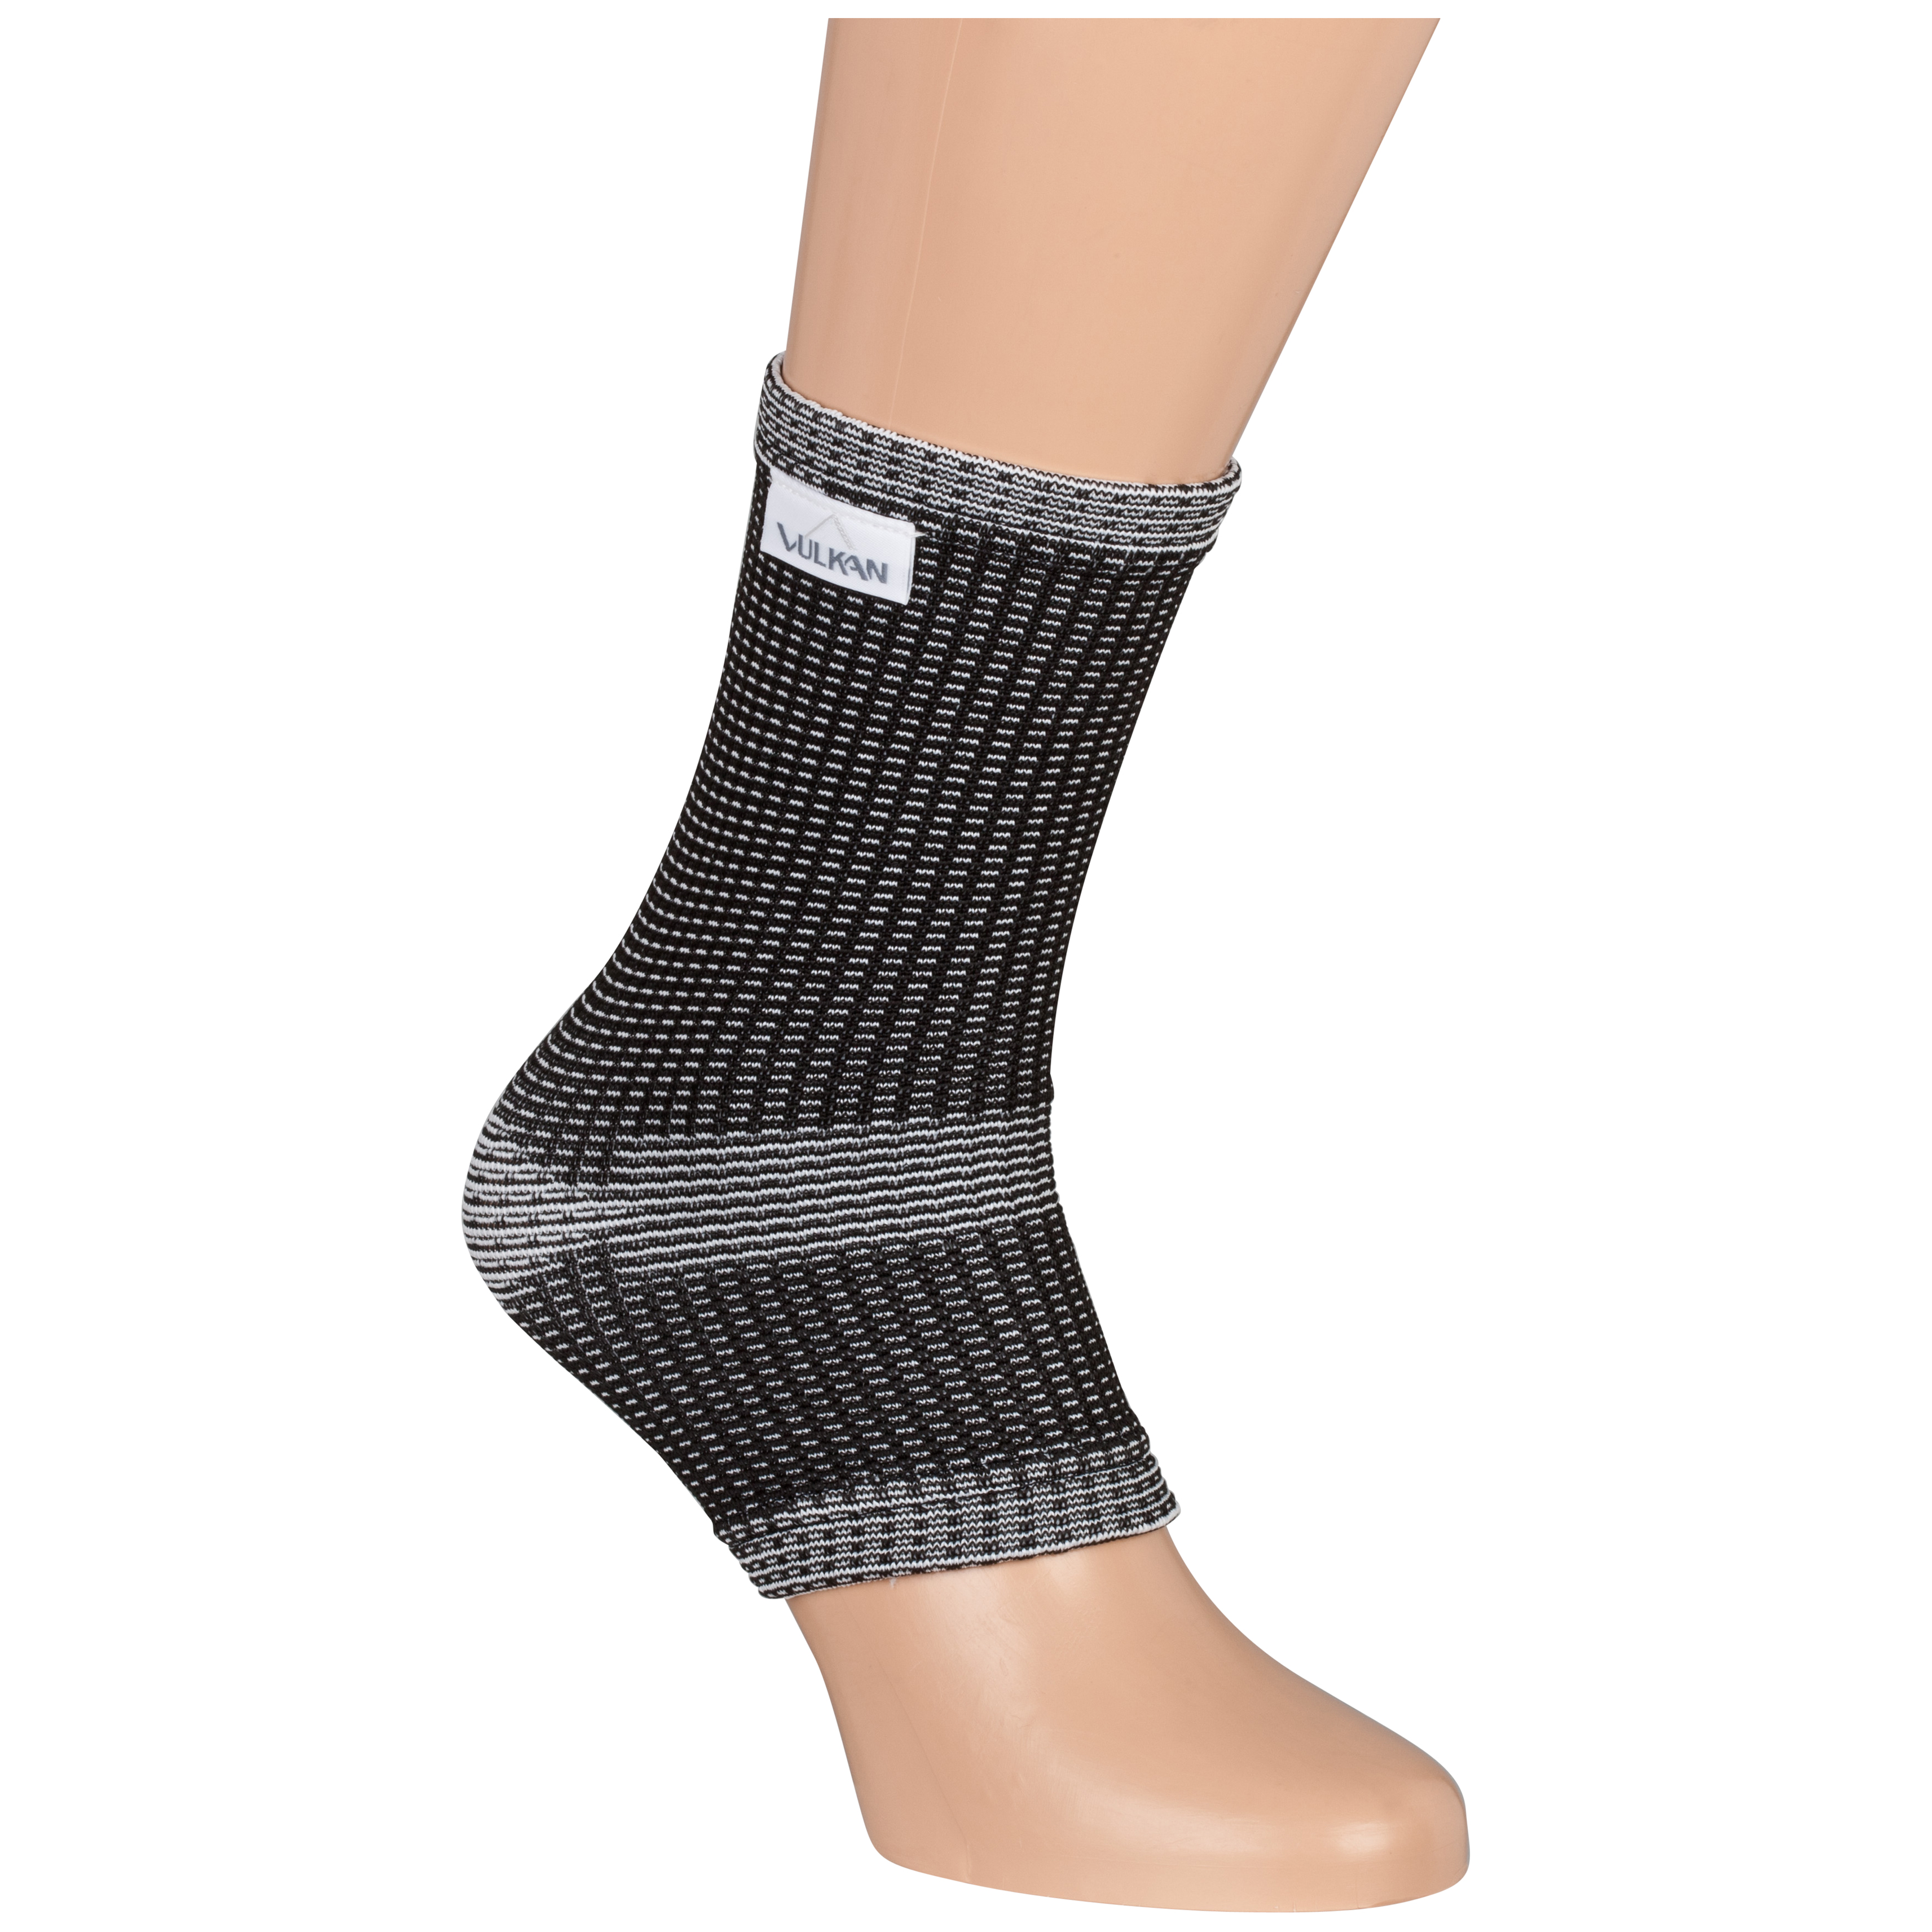 Vulkan Advanced Elastic Ankle Support - Black/Grey